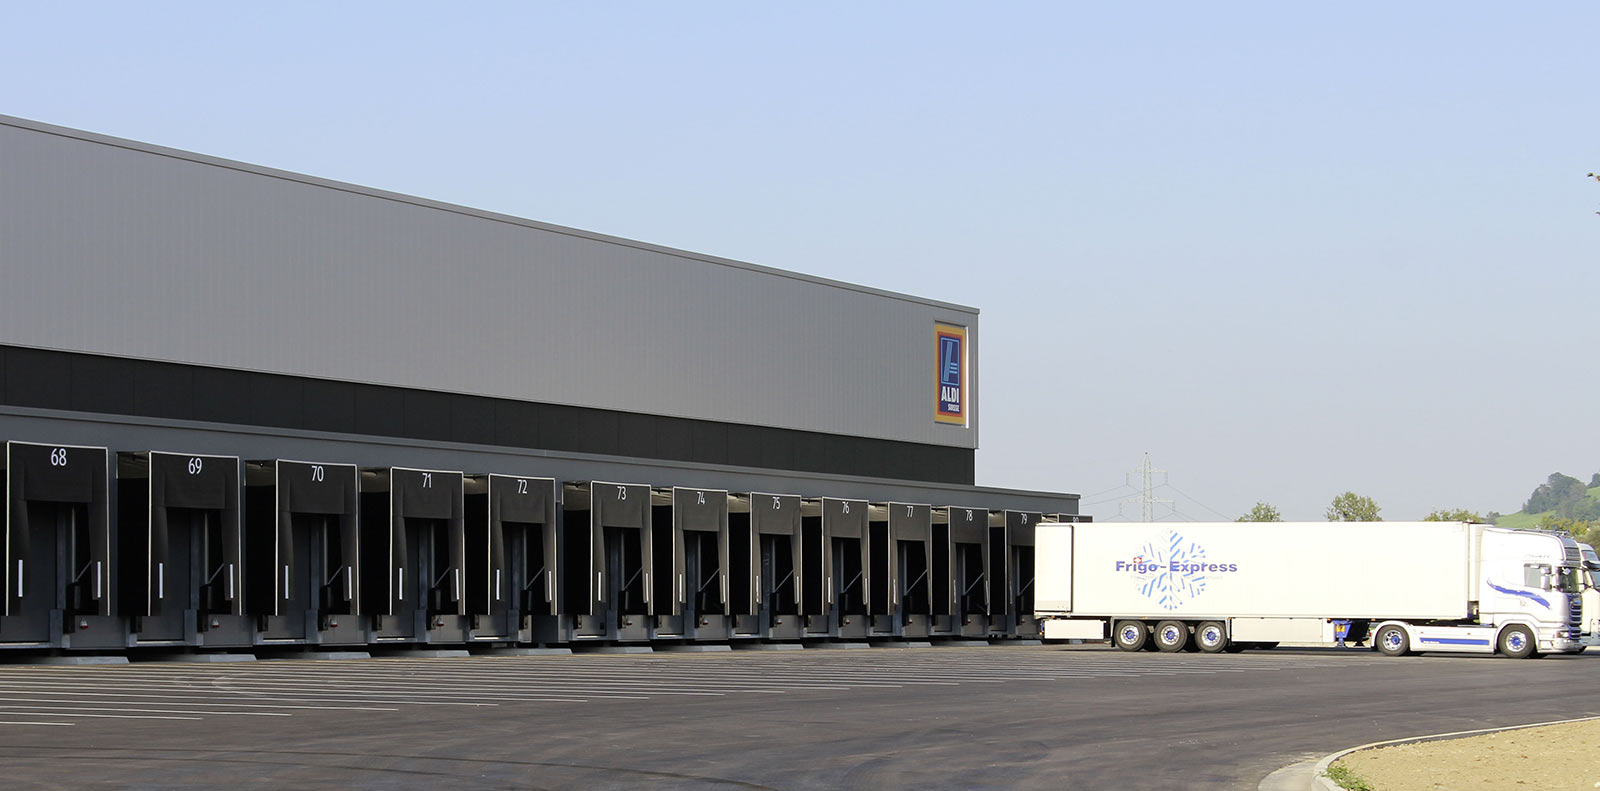 The logistics center has 80 loading bays. Photo: ATP/Kompatscher